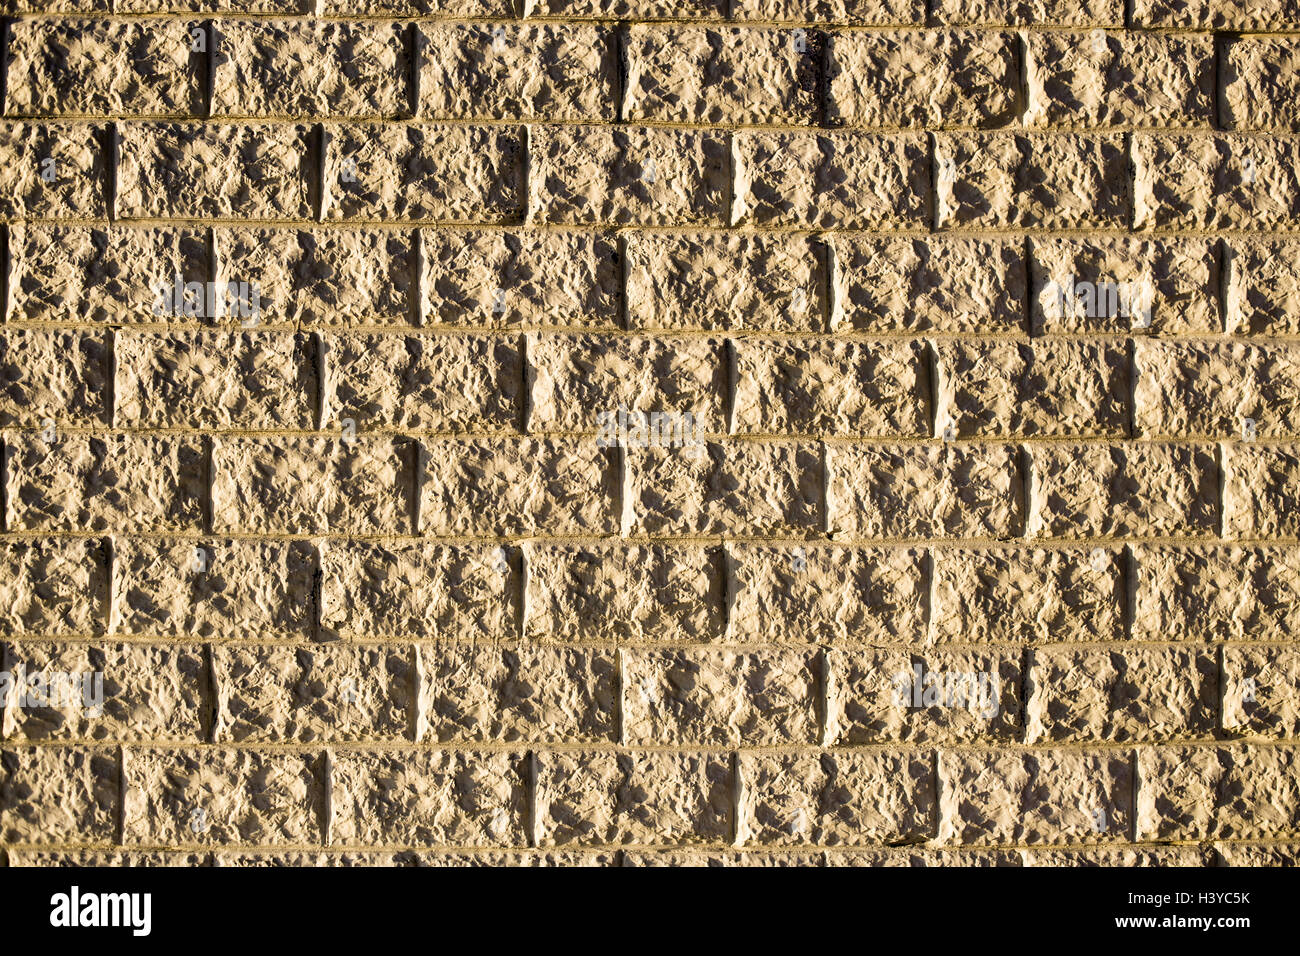 Wall of structured decorative light bricks as background or texture in natural sunlight Stock Photo